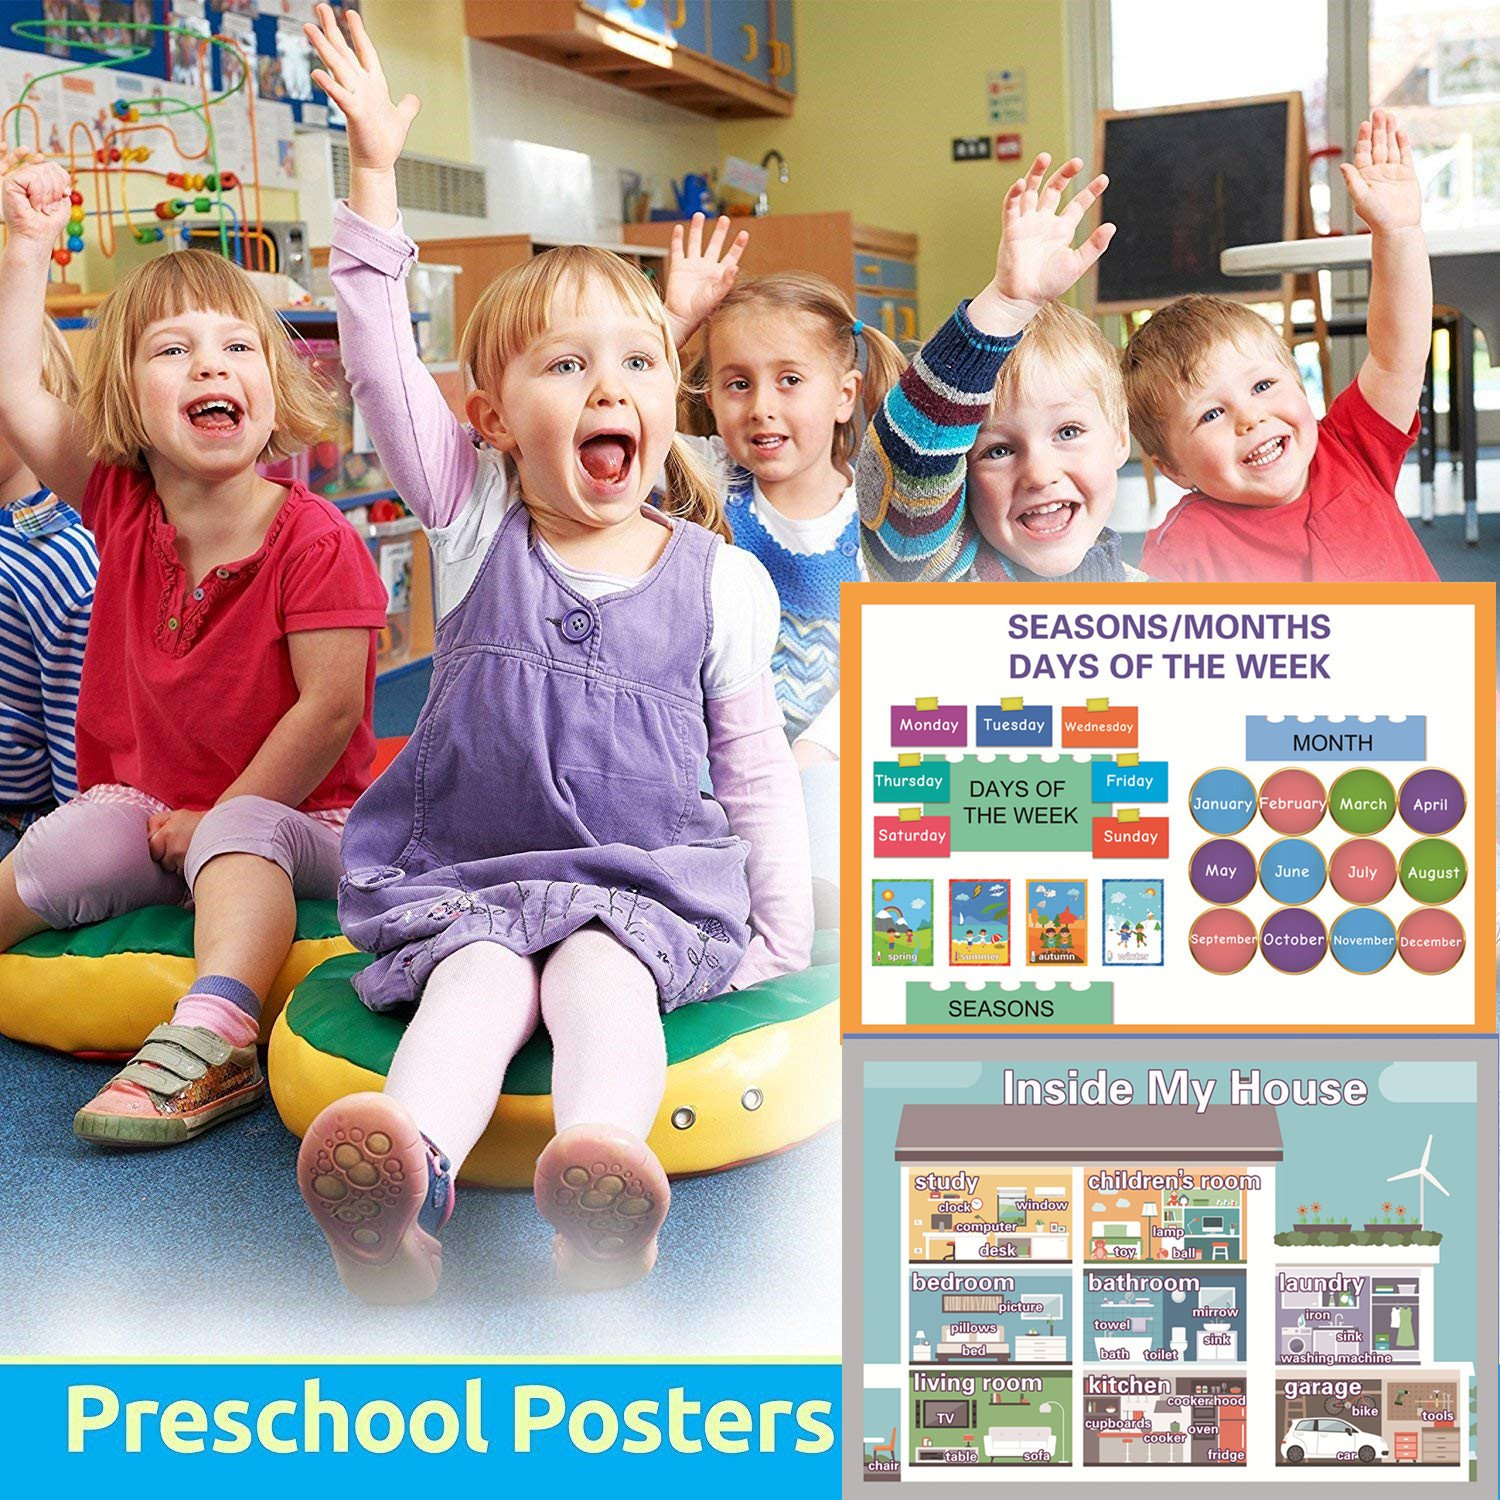 Classroom Decorations Organization Learning Posters For Kindergarten -17x24in Wall Charts For Toddlers SANCENT Educational Preschool Posters for Kindergarten Color